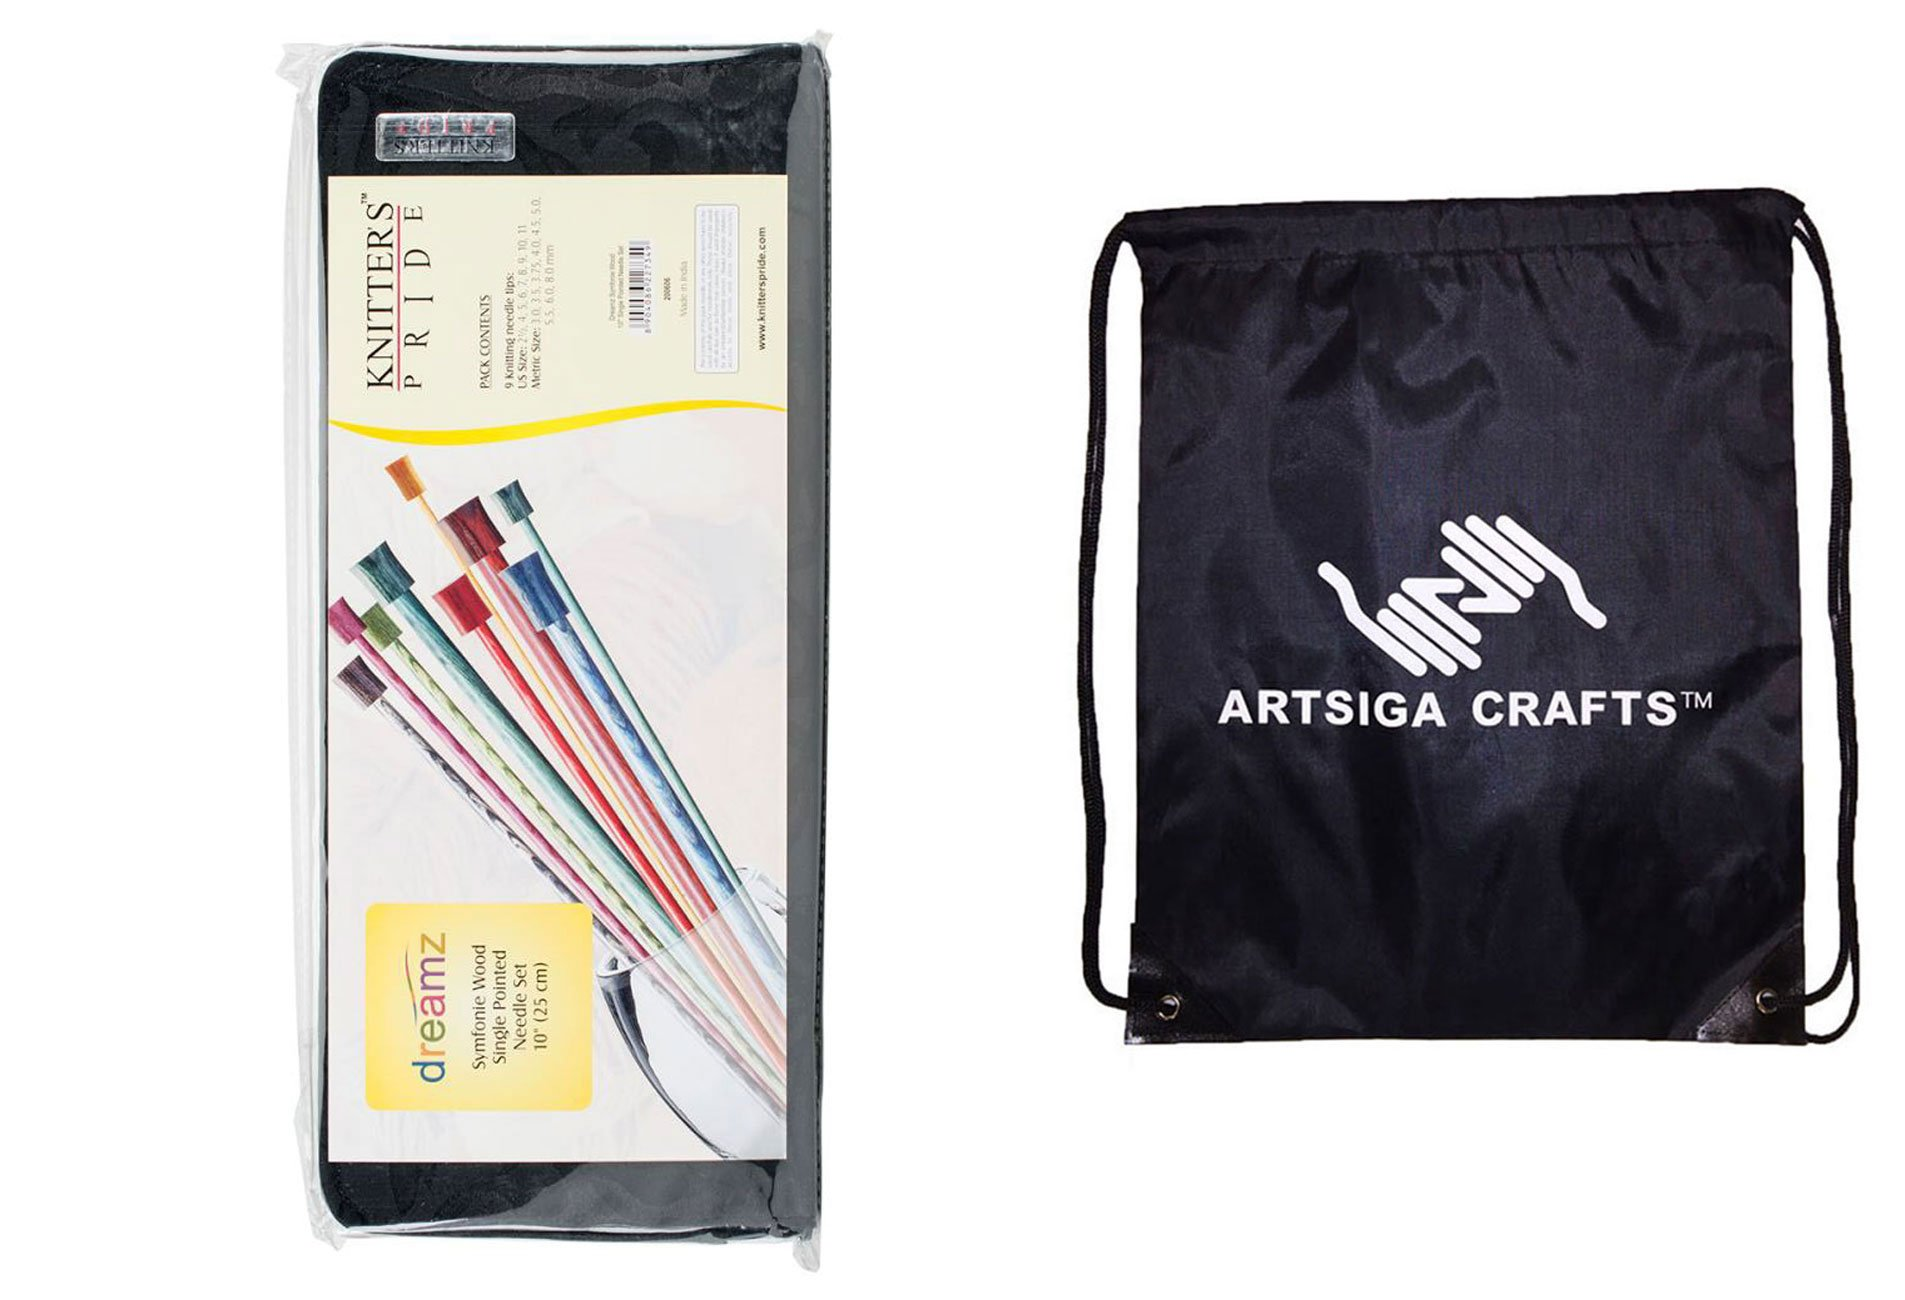 Knitter's Pride Knitting Needles Dreamz Single Pointed 10 inch (25cm) Set 2 of 9 Sizes Bundle with 1 Artsiga Crafts Project Bag 200606